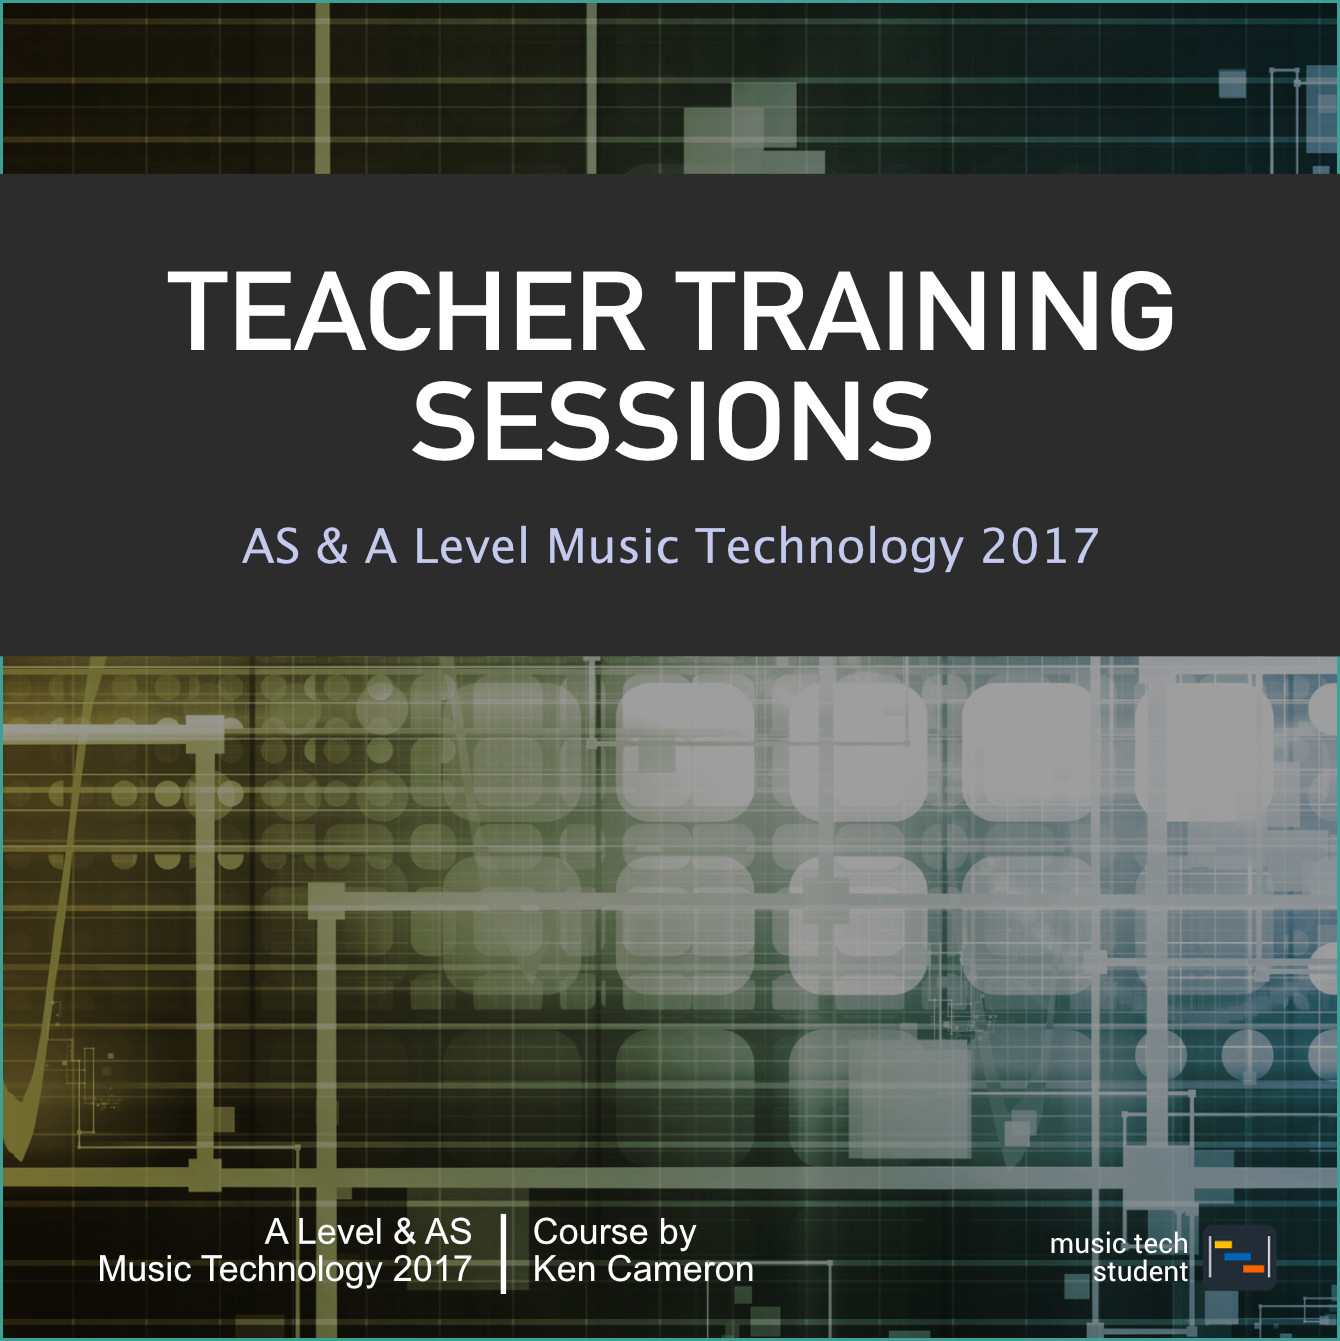 AS and A Level Music Technology Teacher Training Sessions